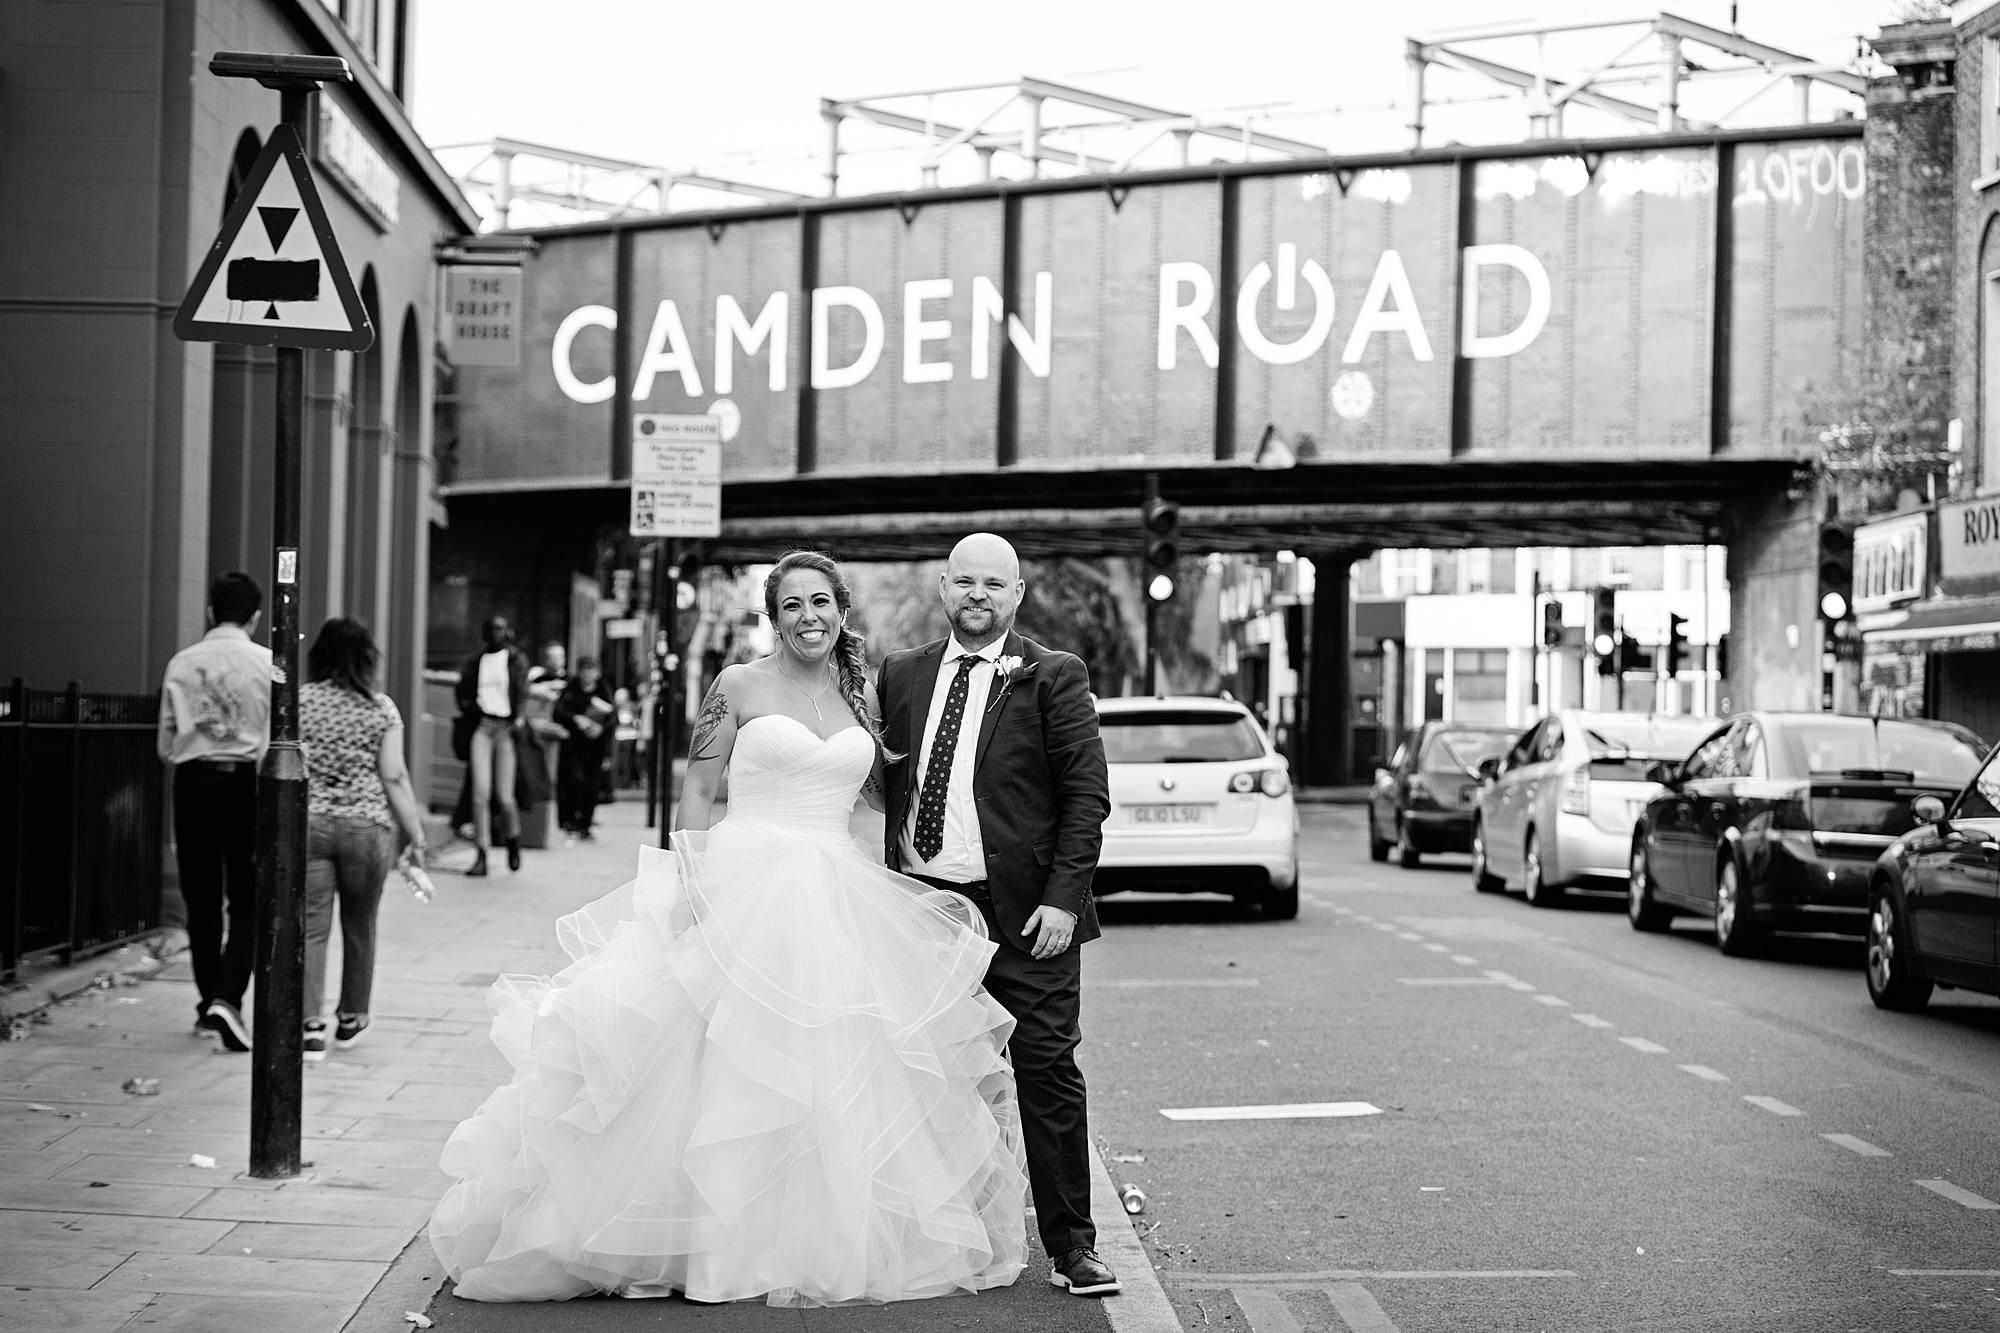 Prince albert camden wedding bride and groom on camden road